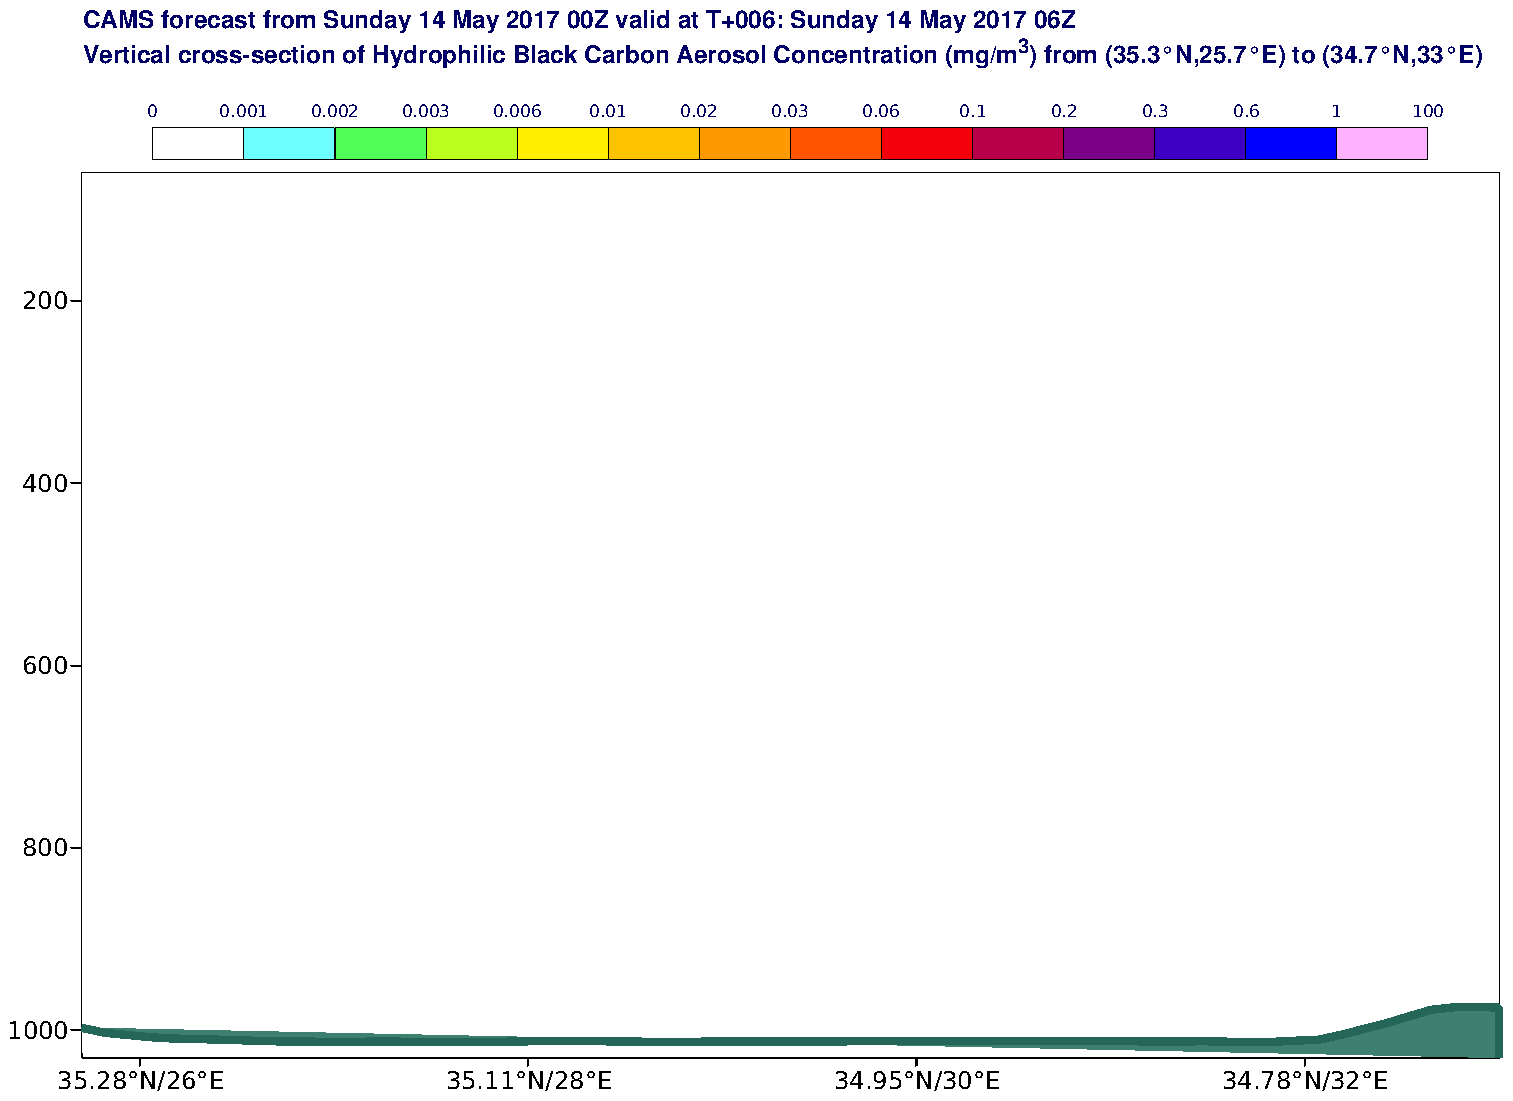 Vertical cross-section of Hydrophilic Black Carbon Aerosol Concentration (mg/m3) valid at T6 - 2017-05-14 06:00